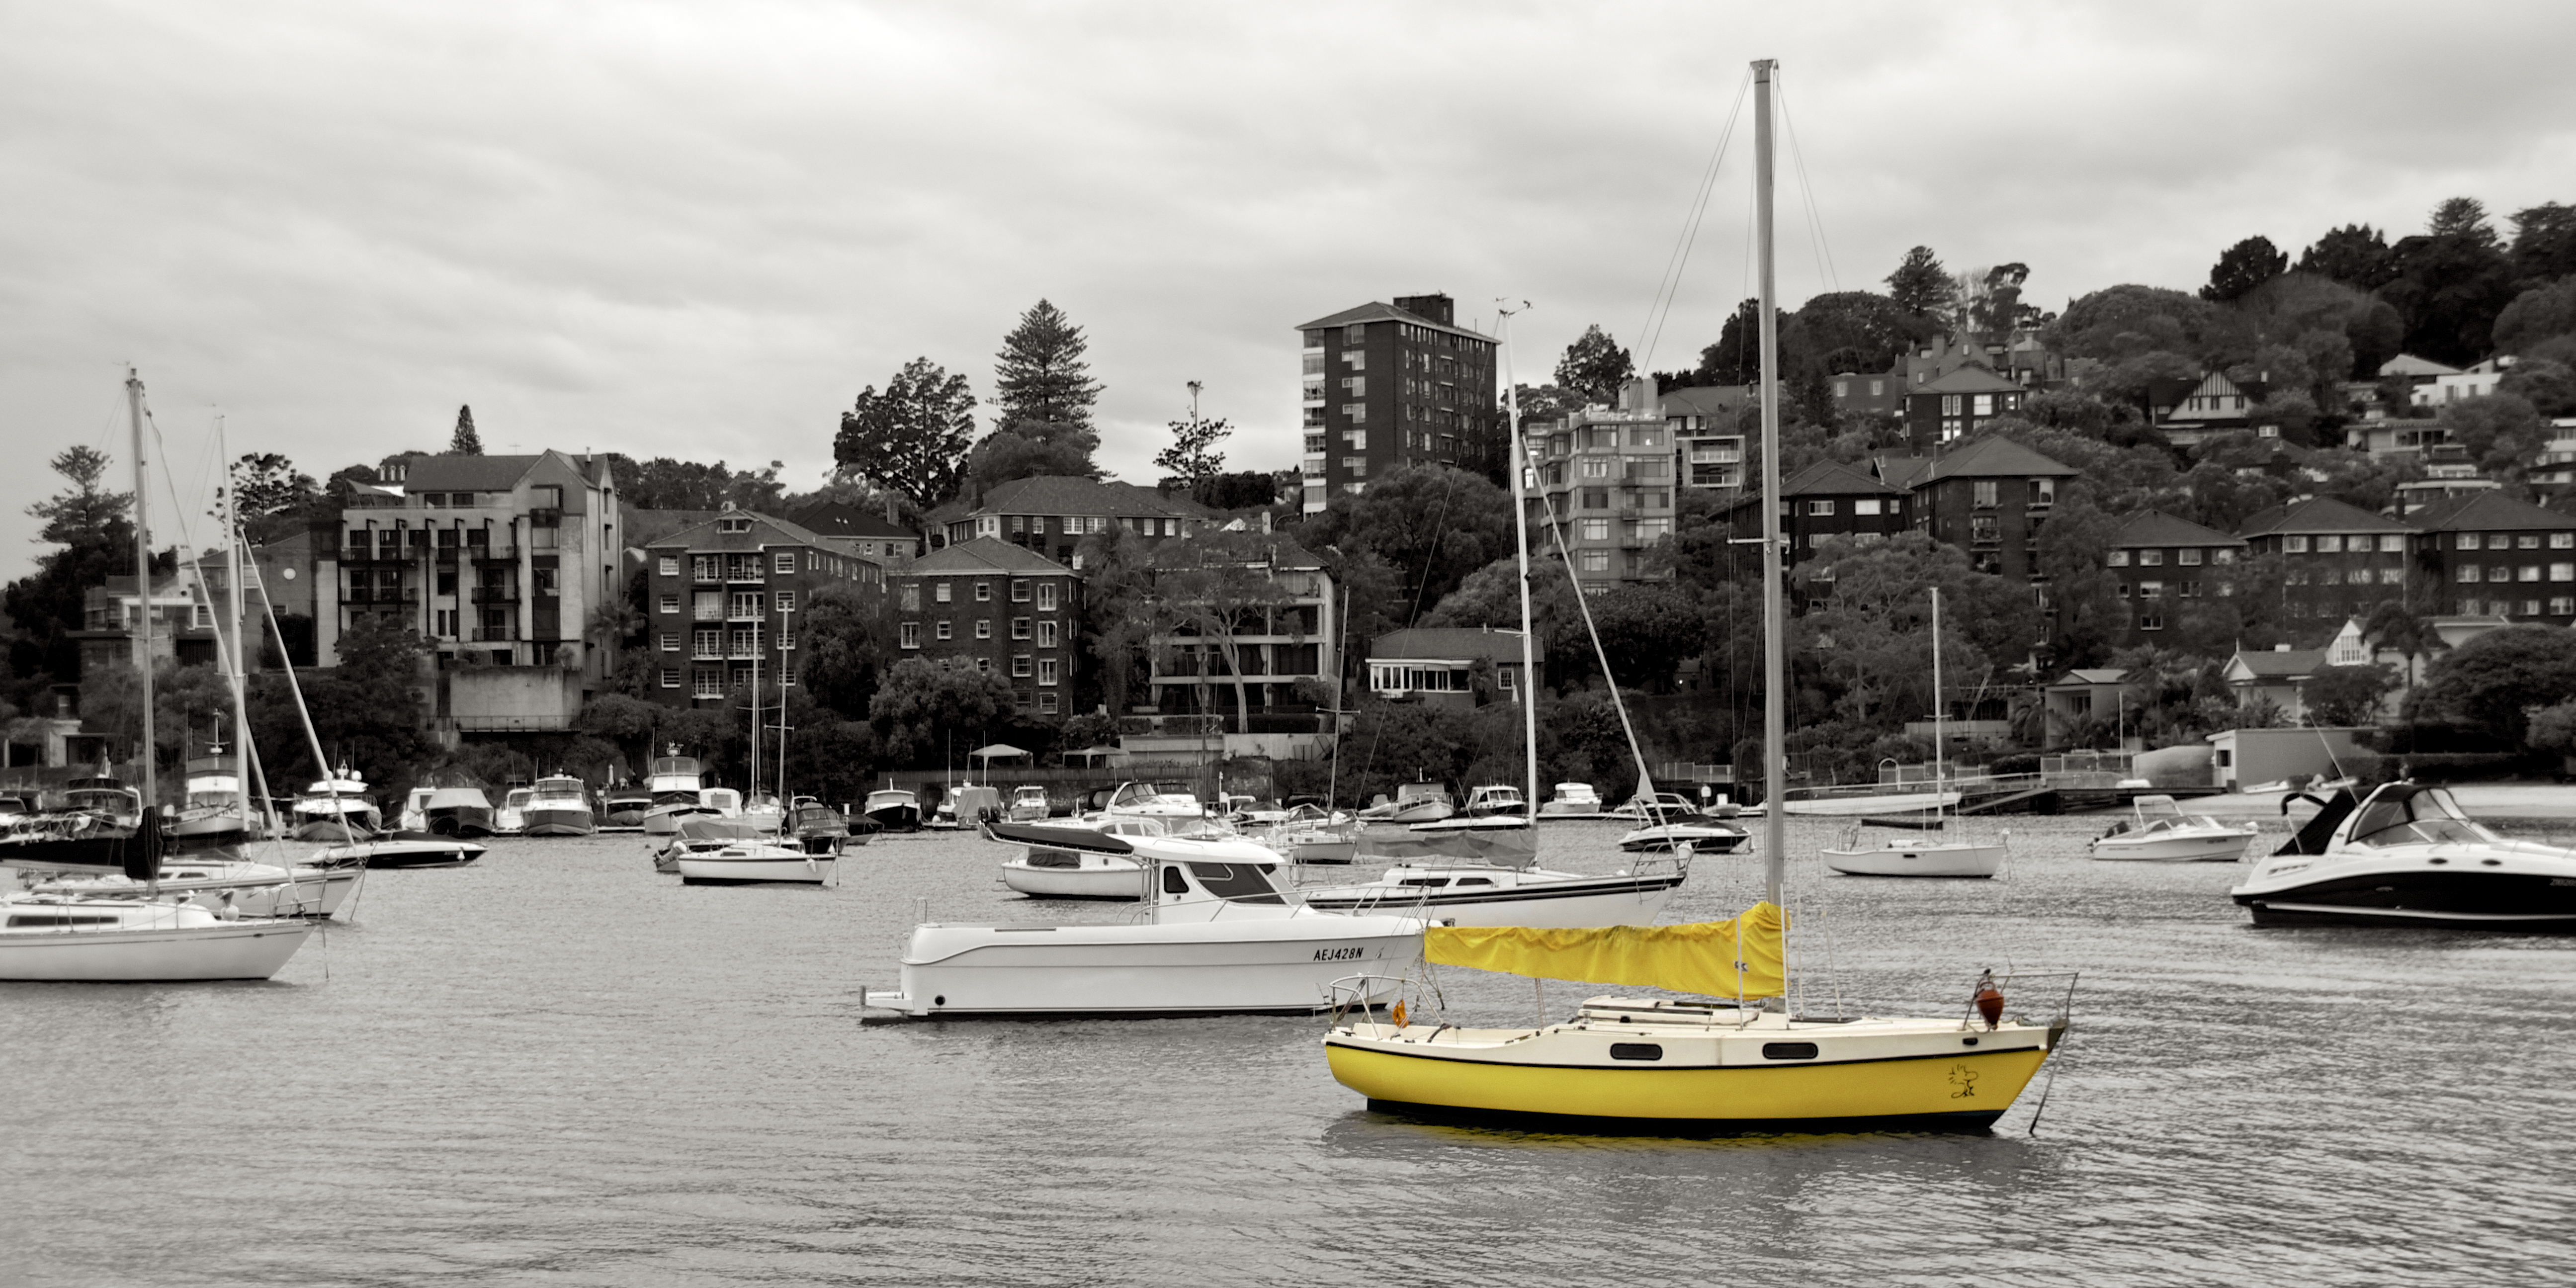 Yellow boat in Double Bay, Boat, CC0, No copyright, Outdoor, HQ Photo